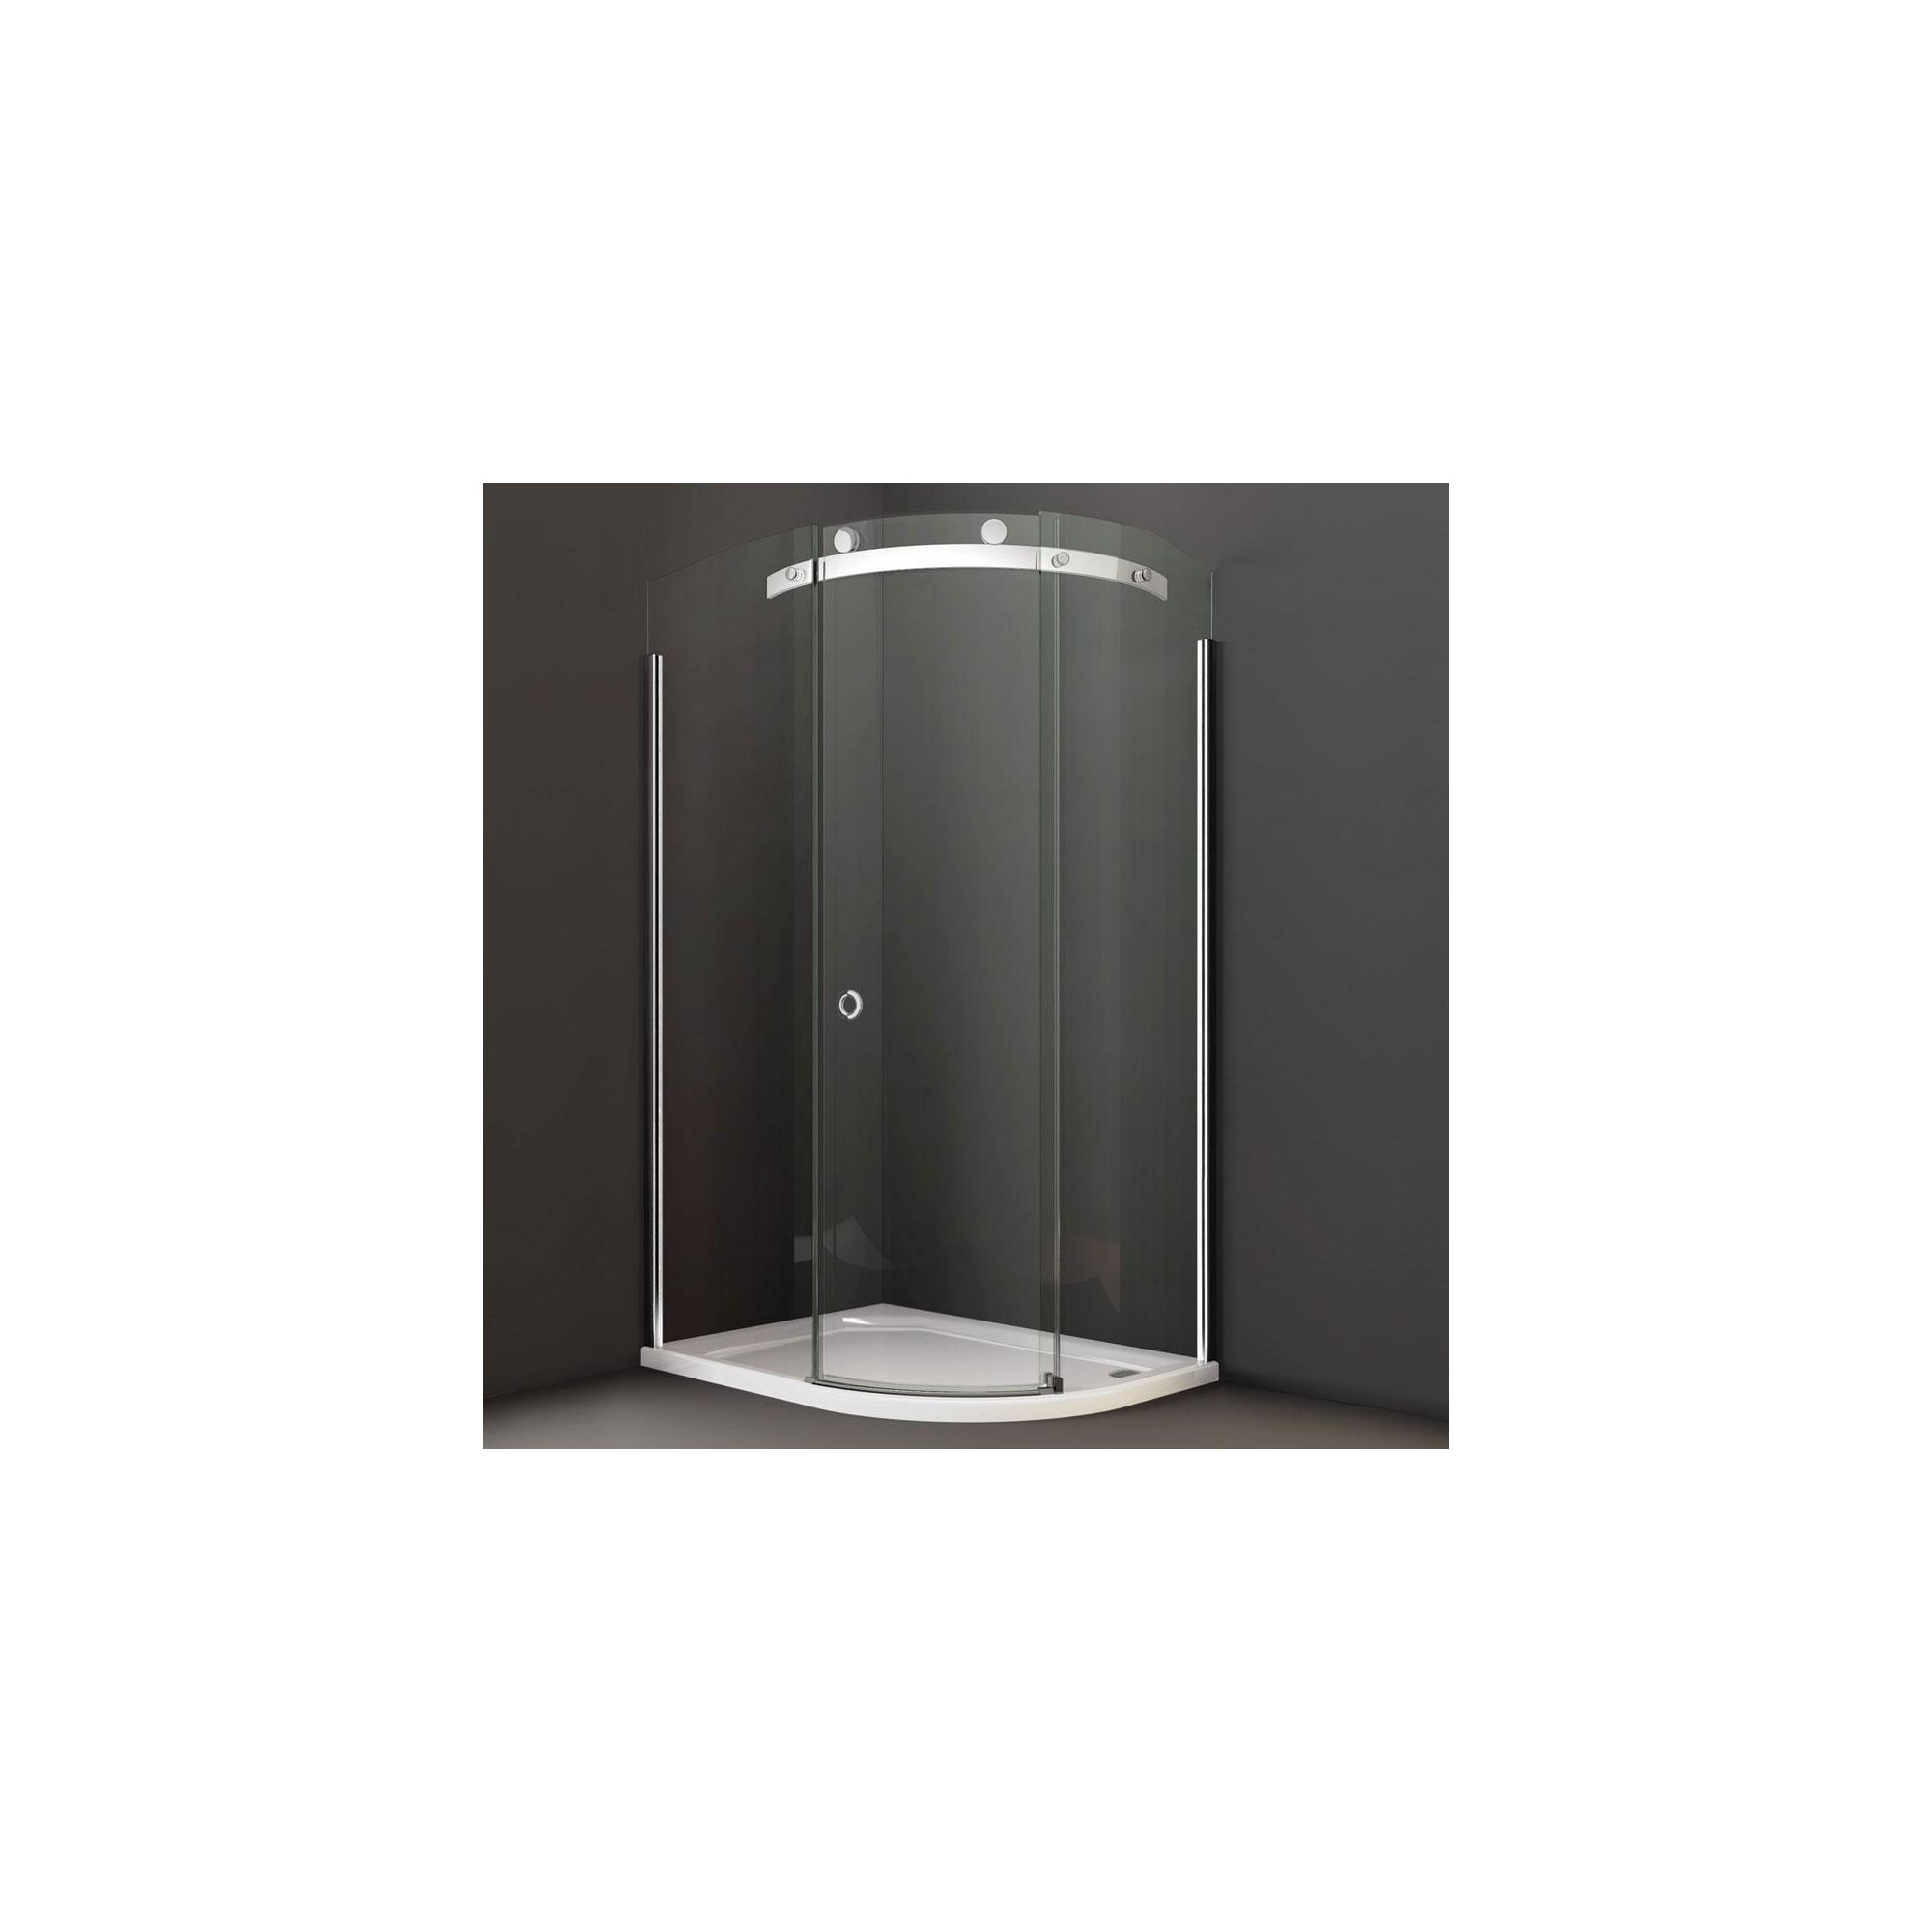 Merlyn Series 10 Offset Quadrant Shower Door, 1000mm x 800mm, 10mm Clear Glass, Right Handed at Tesco Direct